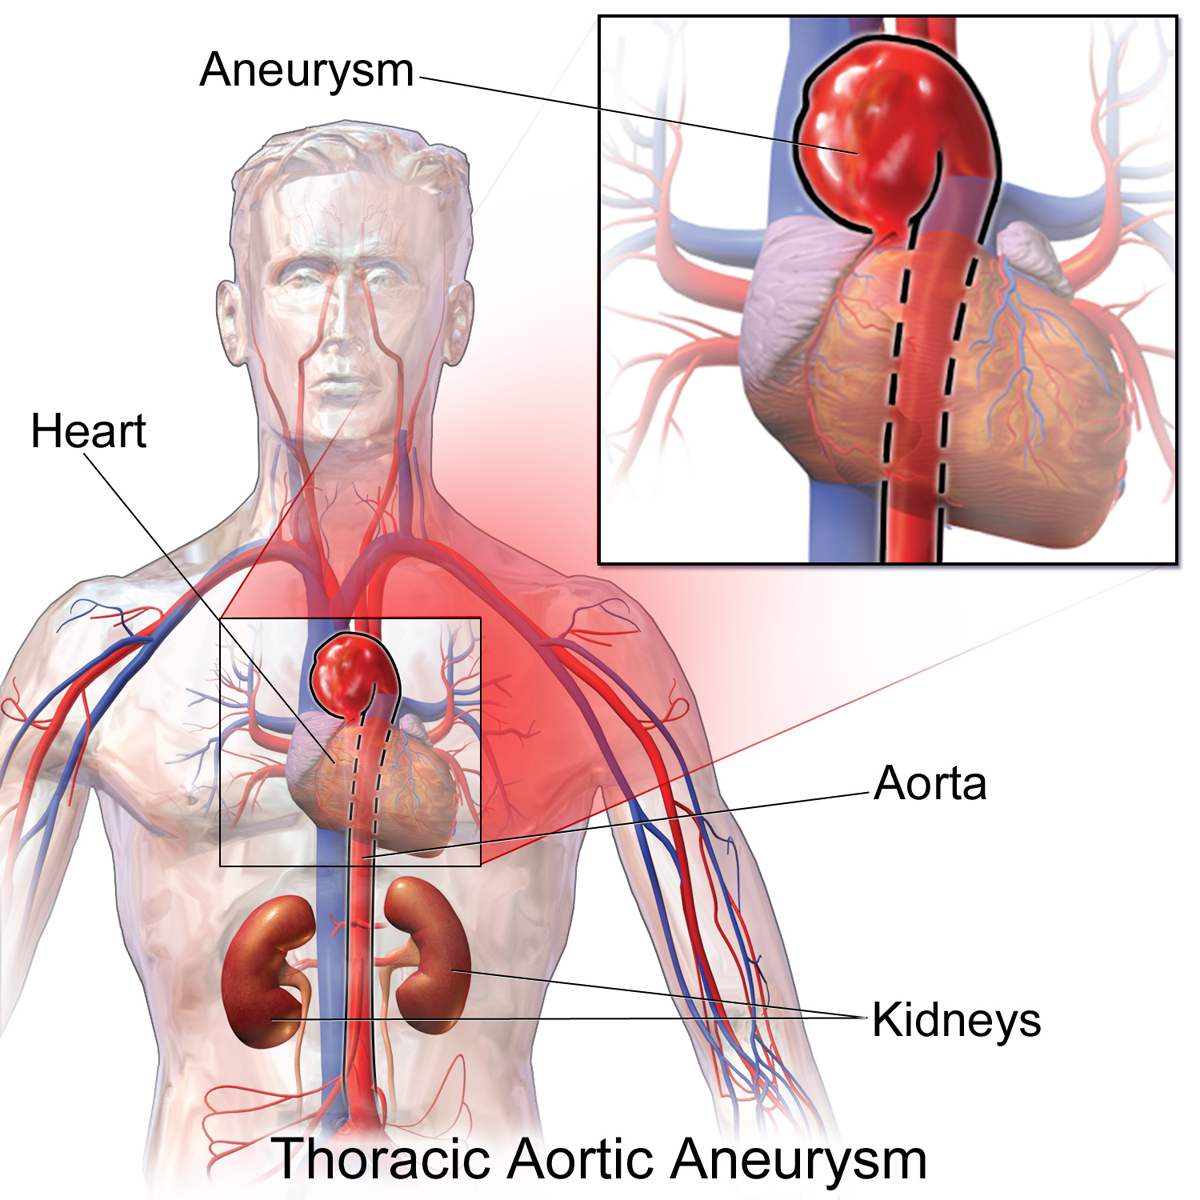 thoracic aortic aneurysm - wikipedia, Human Body